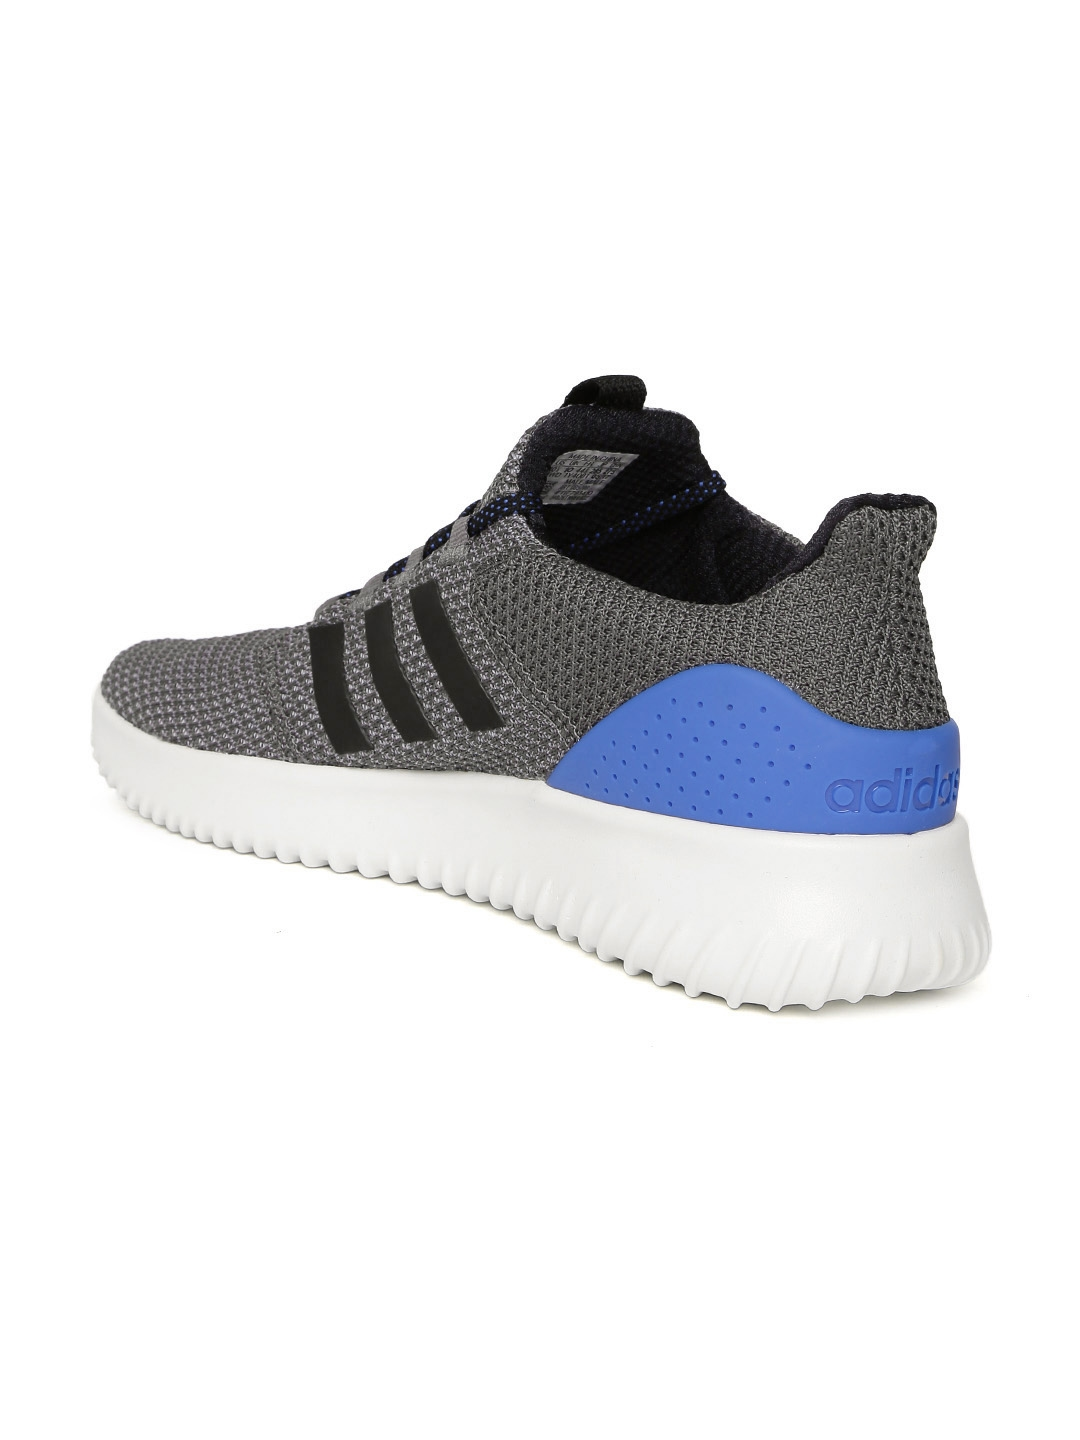 1602461fad02 Buy ADIDAS NEO Men Grey CLOUDFOAM ULTIMATE Sneakers - Casual Shoes ...